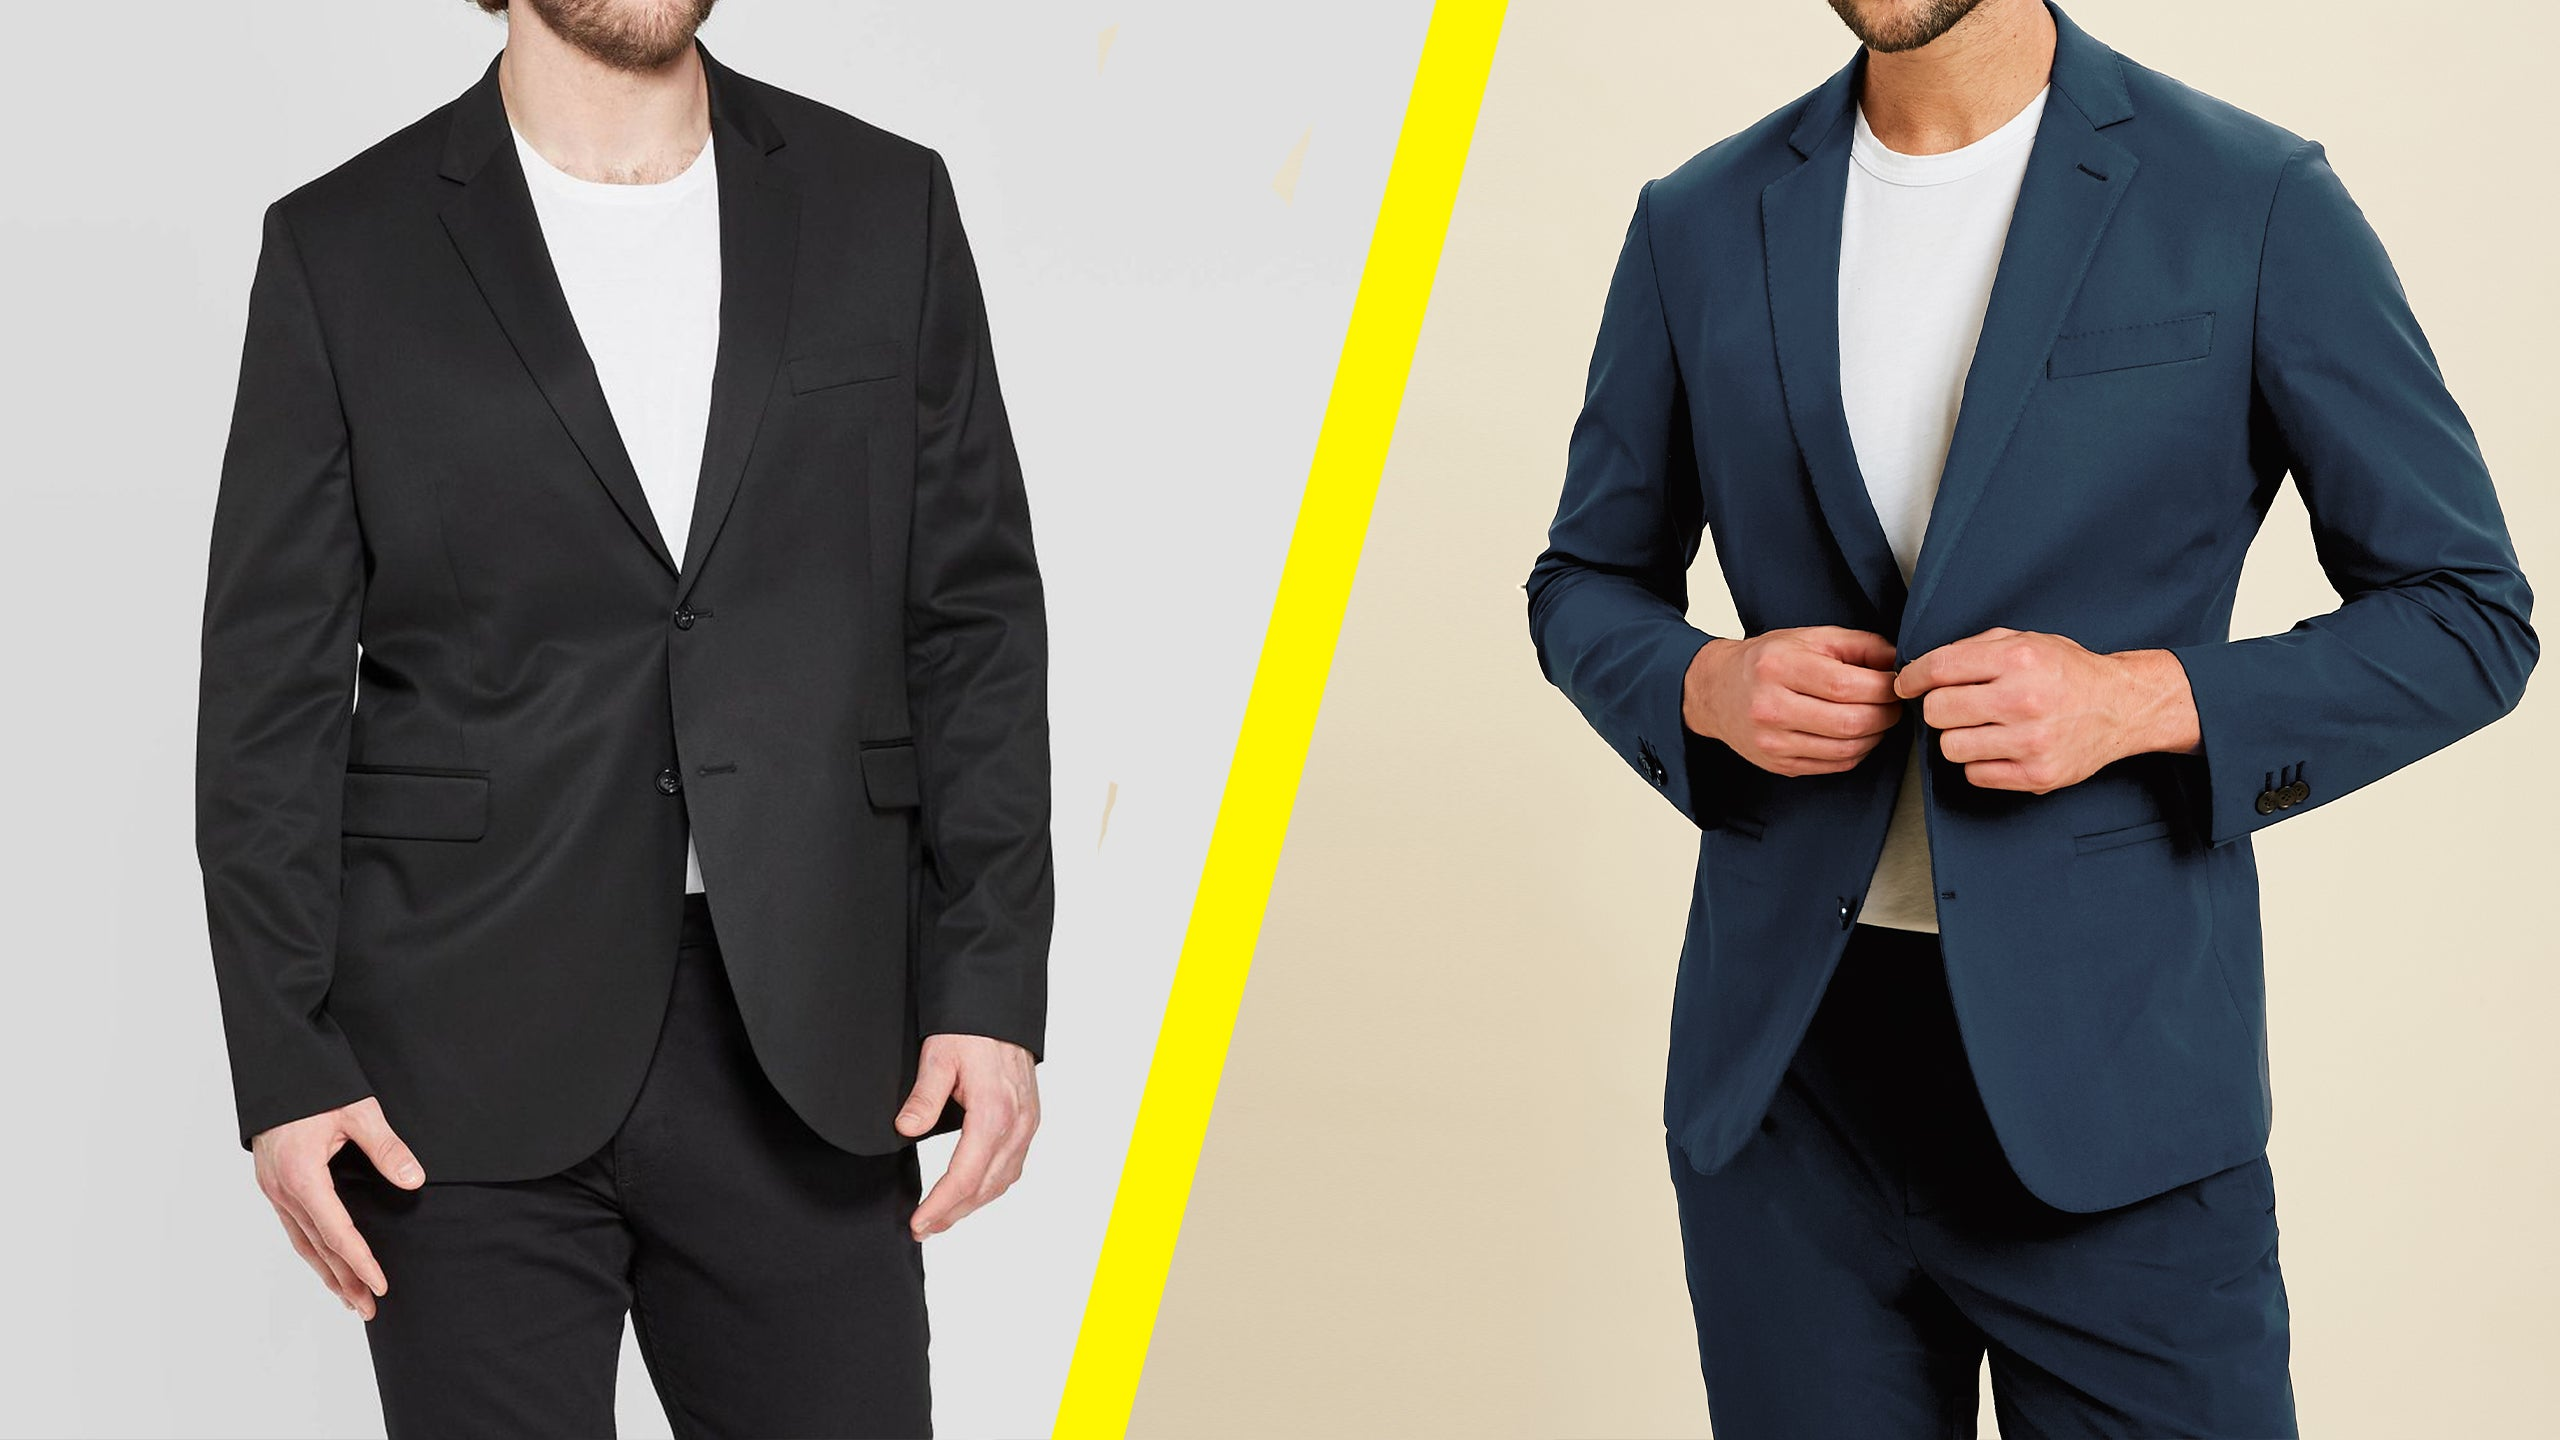 $100 Stretch Suit Vs. $1000 Stretch Suit